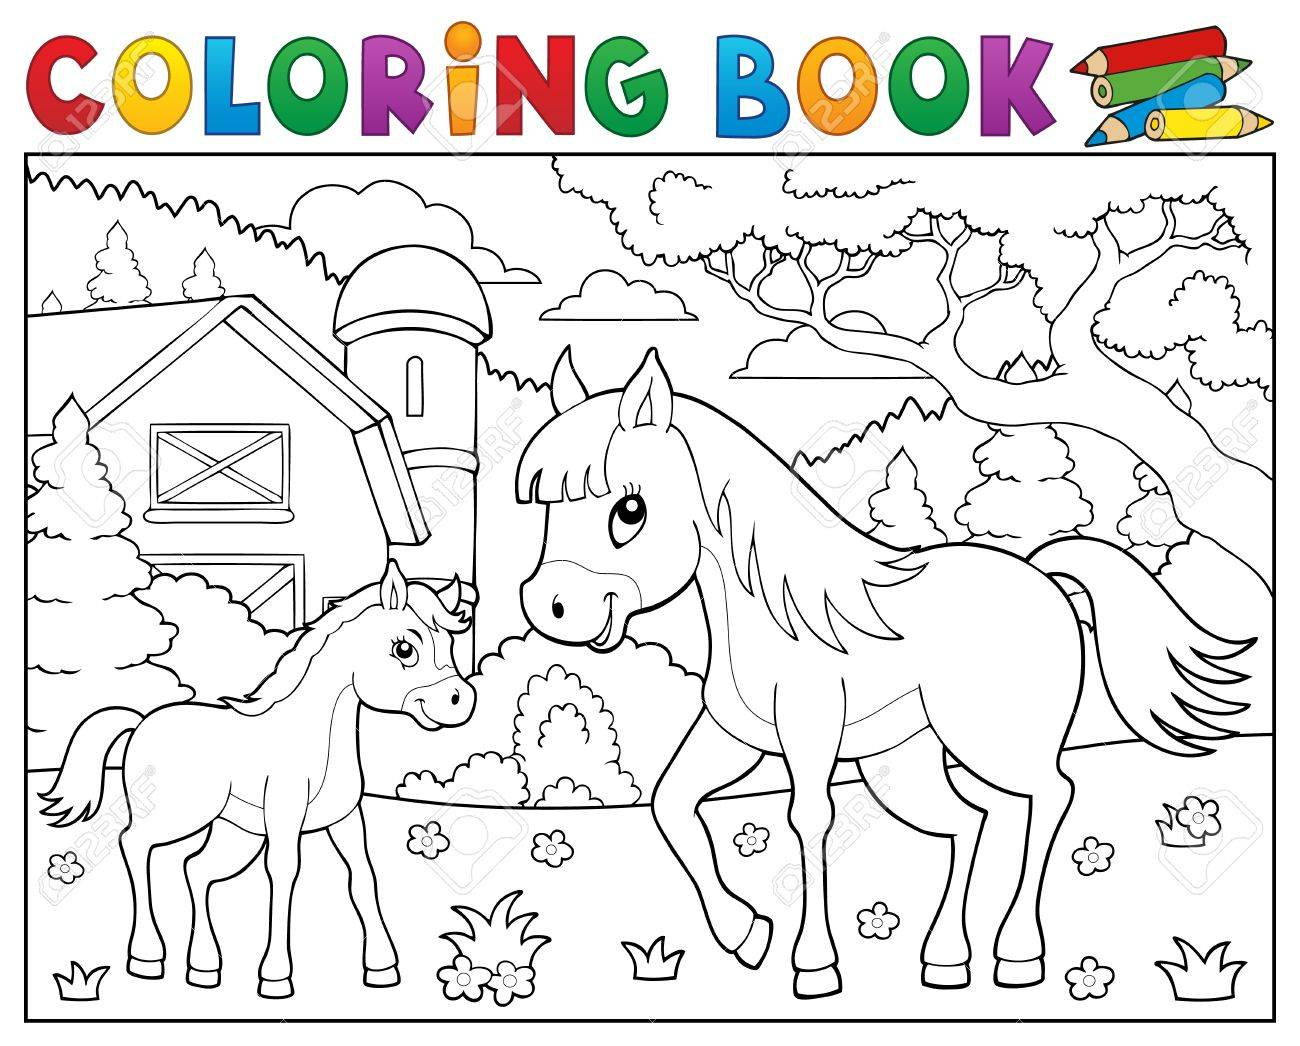 Coloring Book Horse With Foal Theme 2 - Eps10 Vector Illustration ...